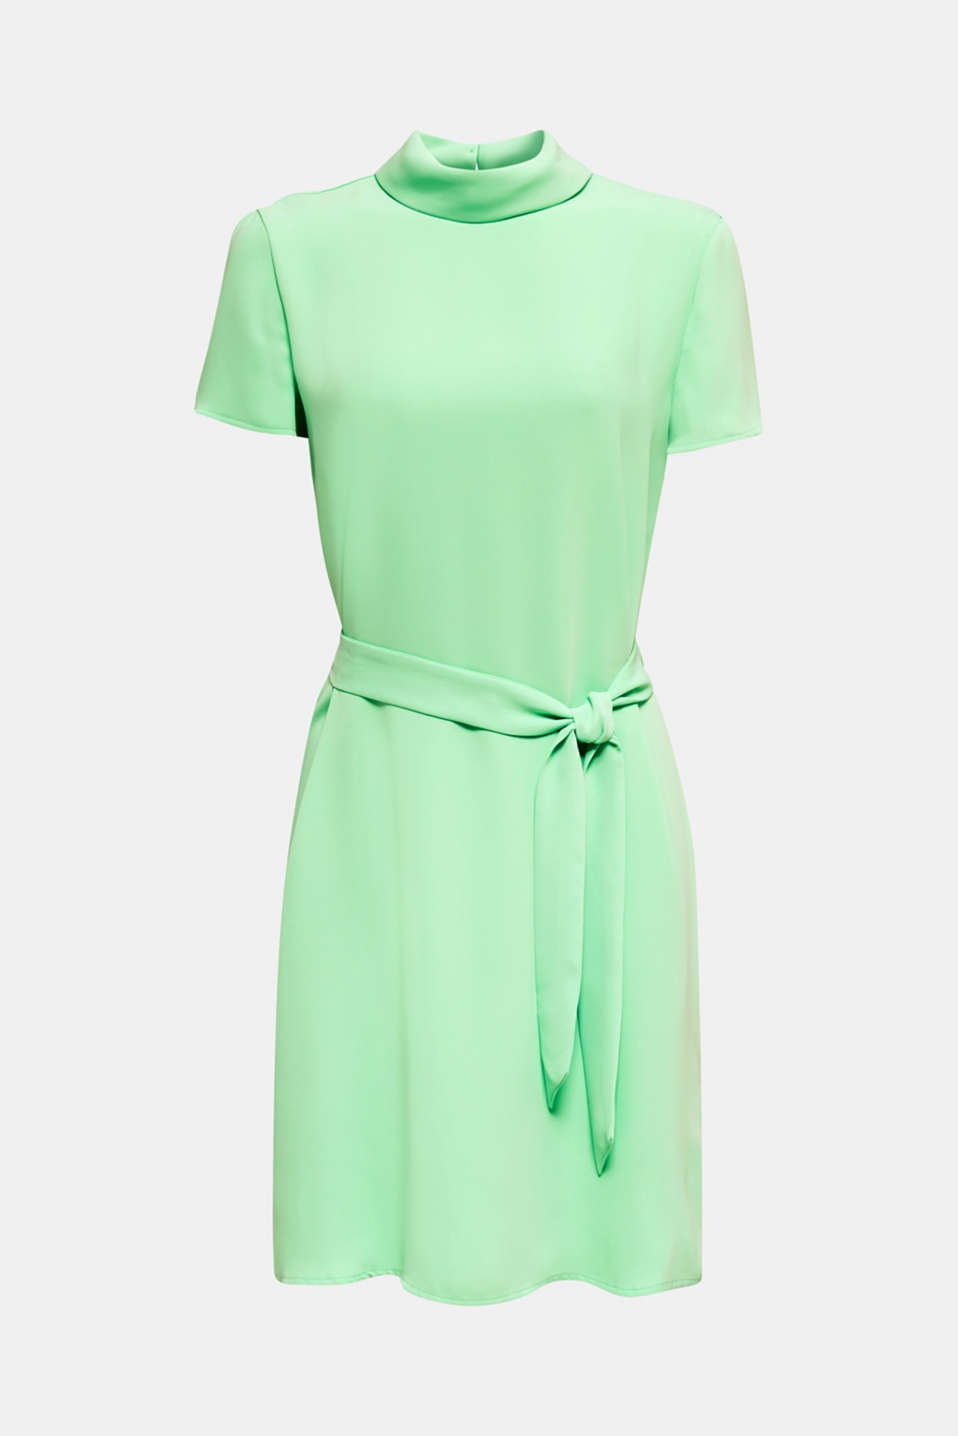 Cloth polo neck dress, LIGHT GREEN, detail image number 7